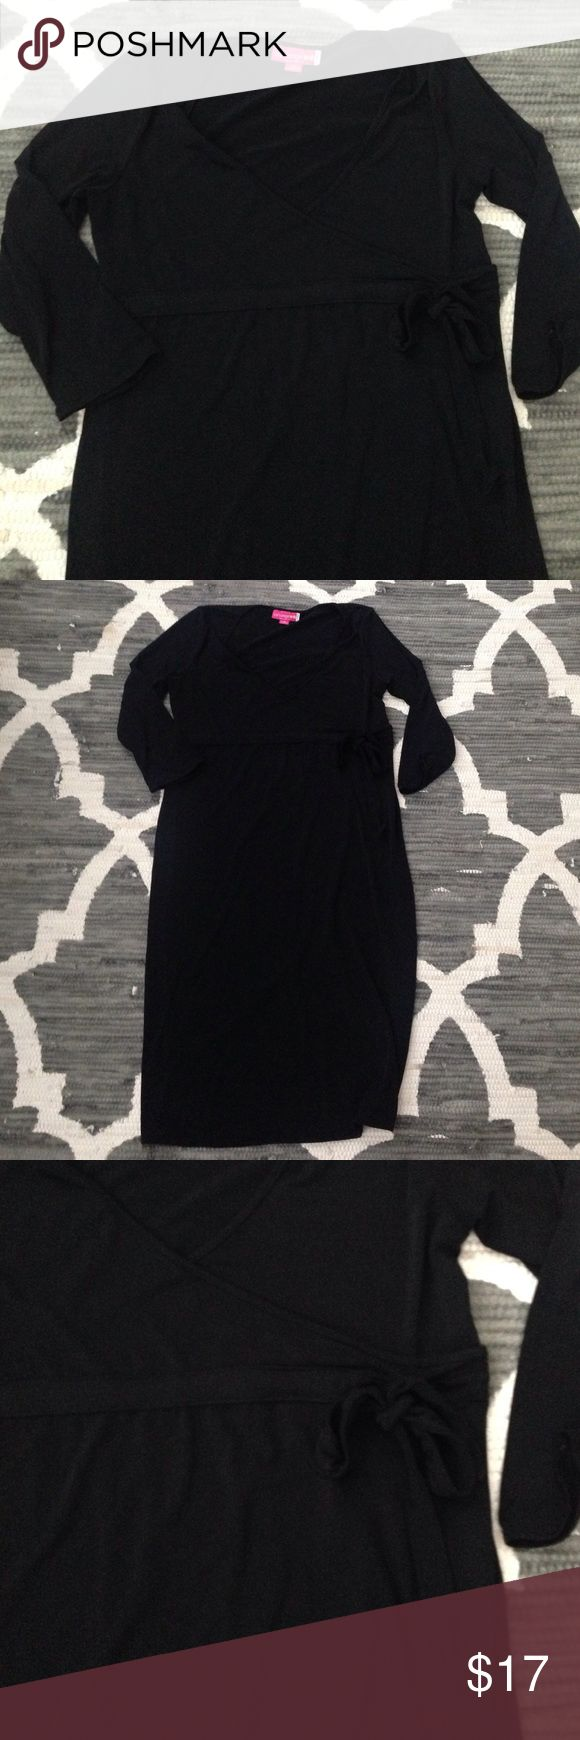 1000 ideas about black maternity dresses on pinterest maternity